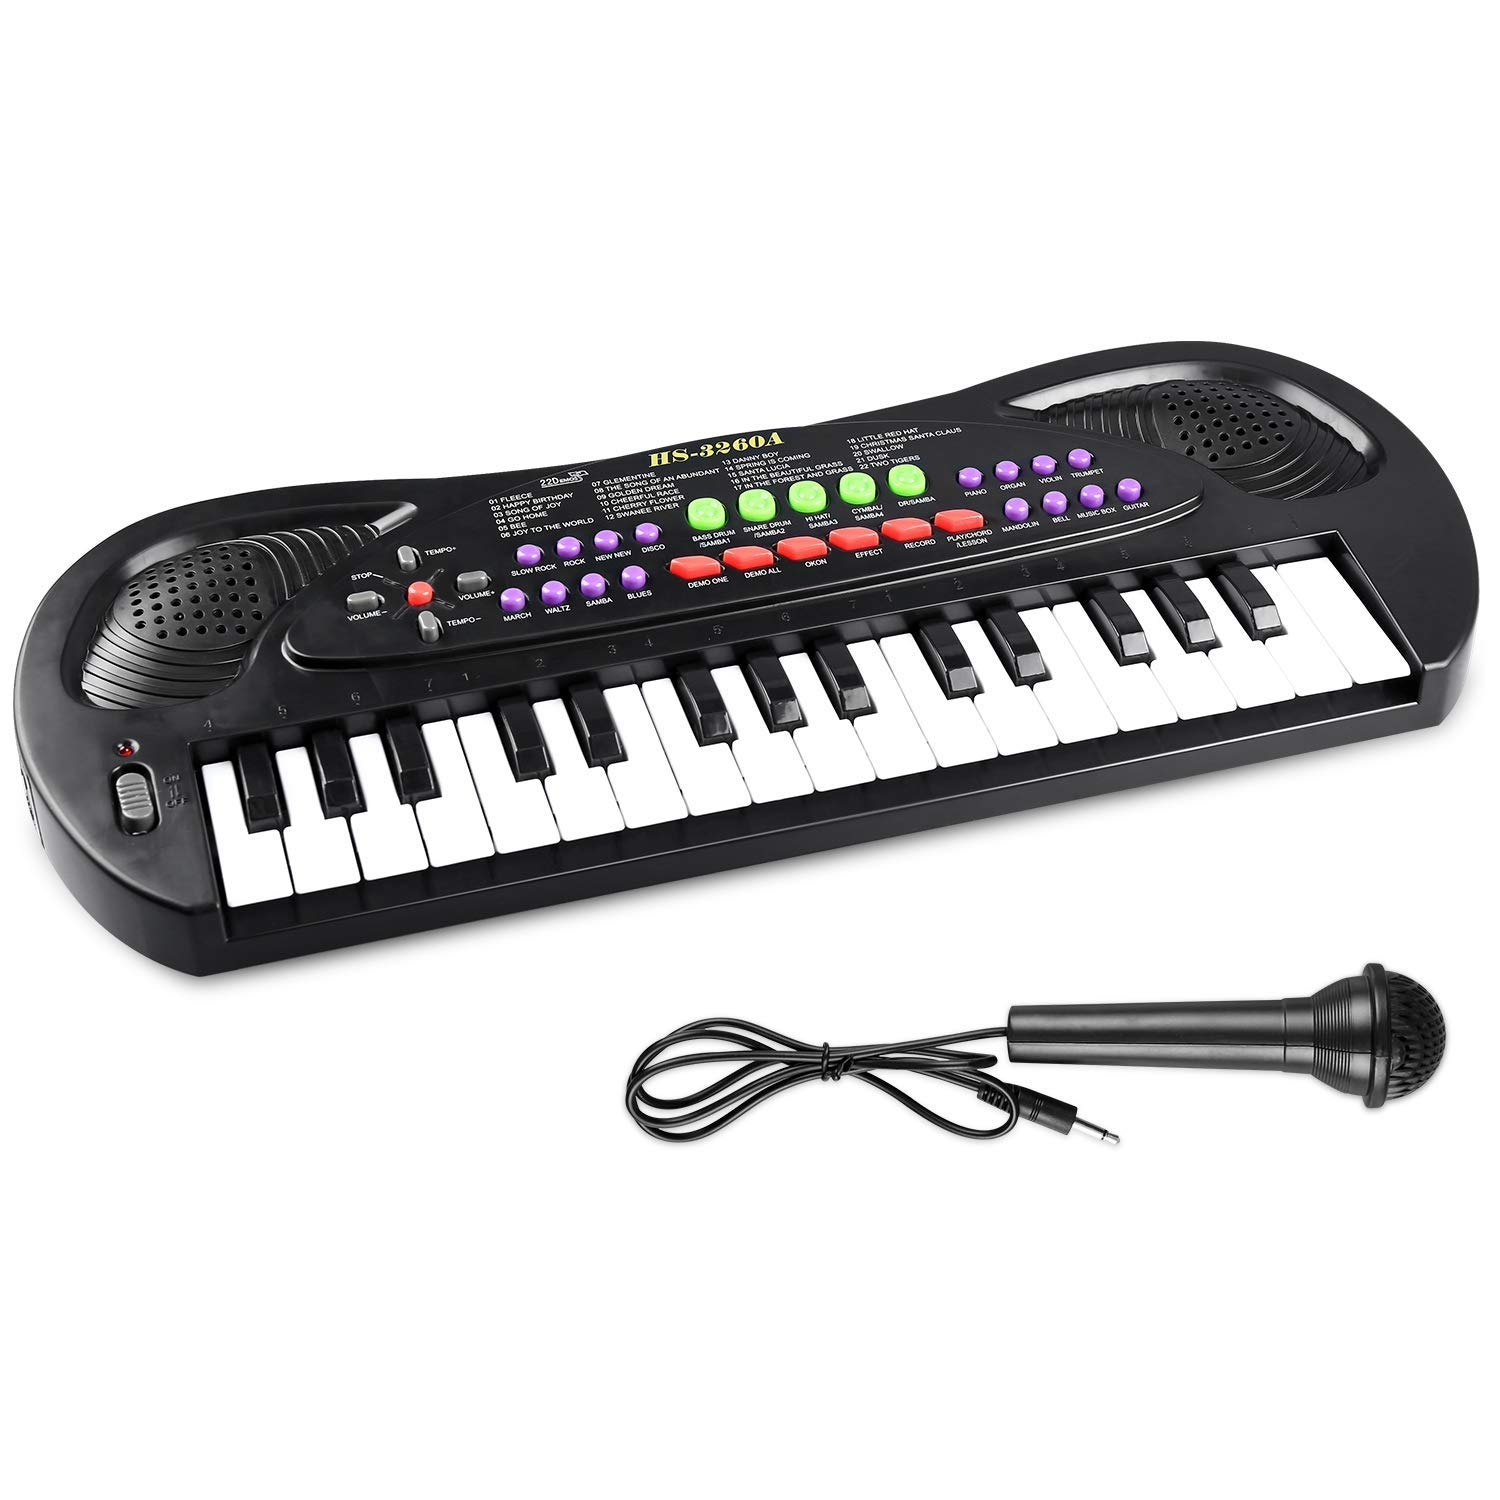 AIMEDYOU Kids Piano Keyboard 32 Key - Portable Electronic Musical Instrument Multi-Function Keyboard Teaching Toys Birthday Christmas Day Gifts for Kids by AIMEDYOU